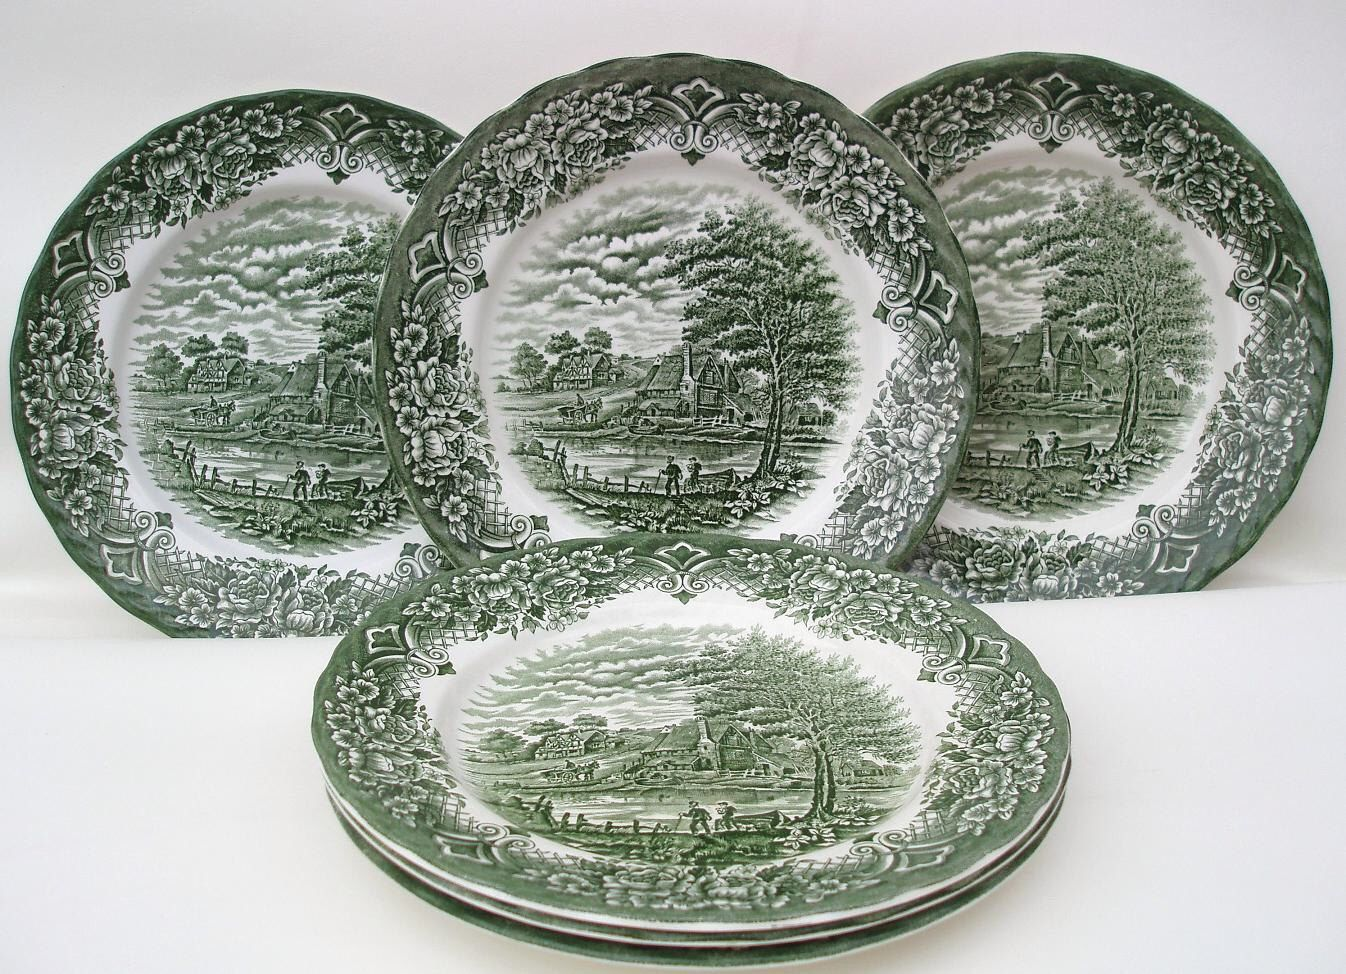 Vintage Wh Grindley Dinner Plates Green Transferware Staffordshire Pottery 10 Dinnerware Homeland Pattern Set Of